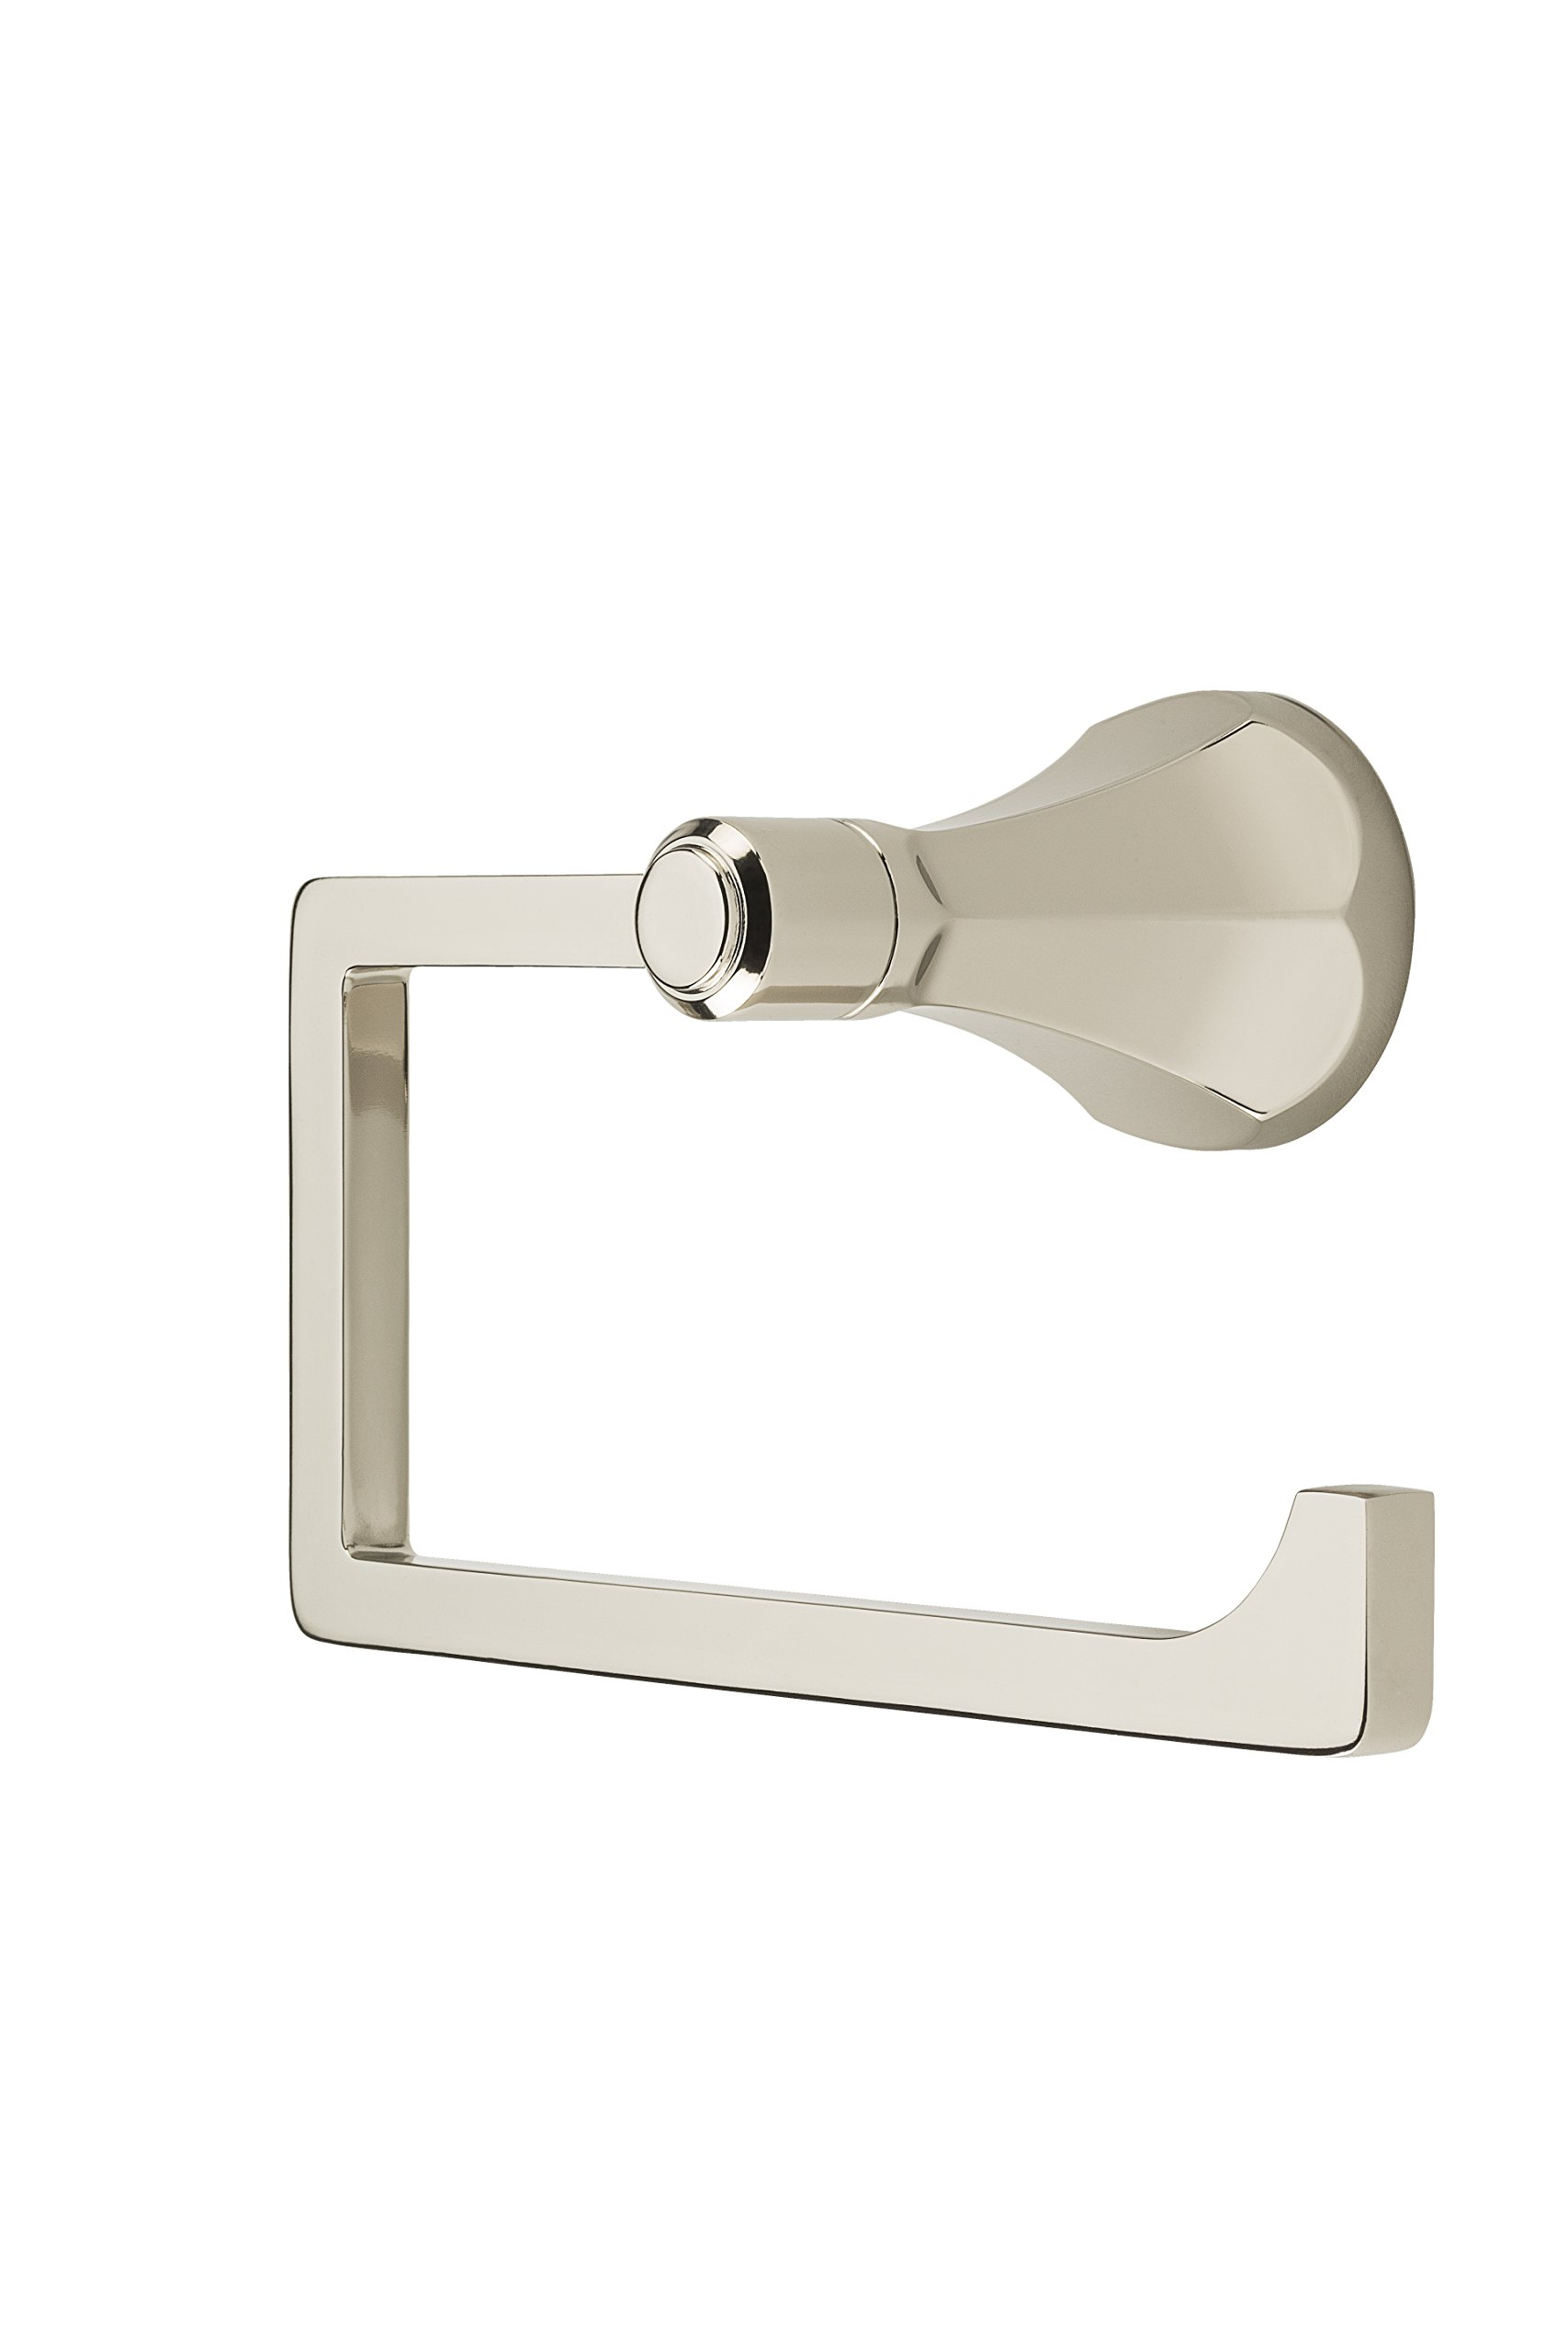 Pfister Arterra Towel Ring, Polished Nickel by Pfister (Image #1)